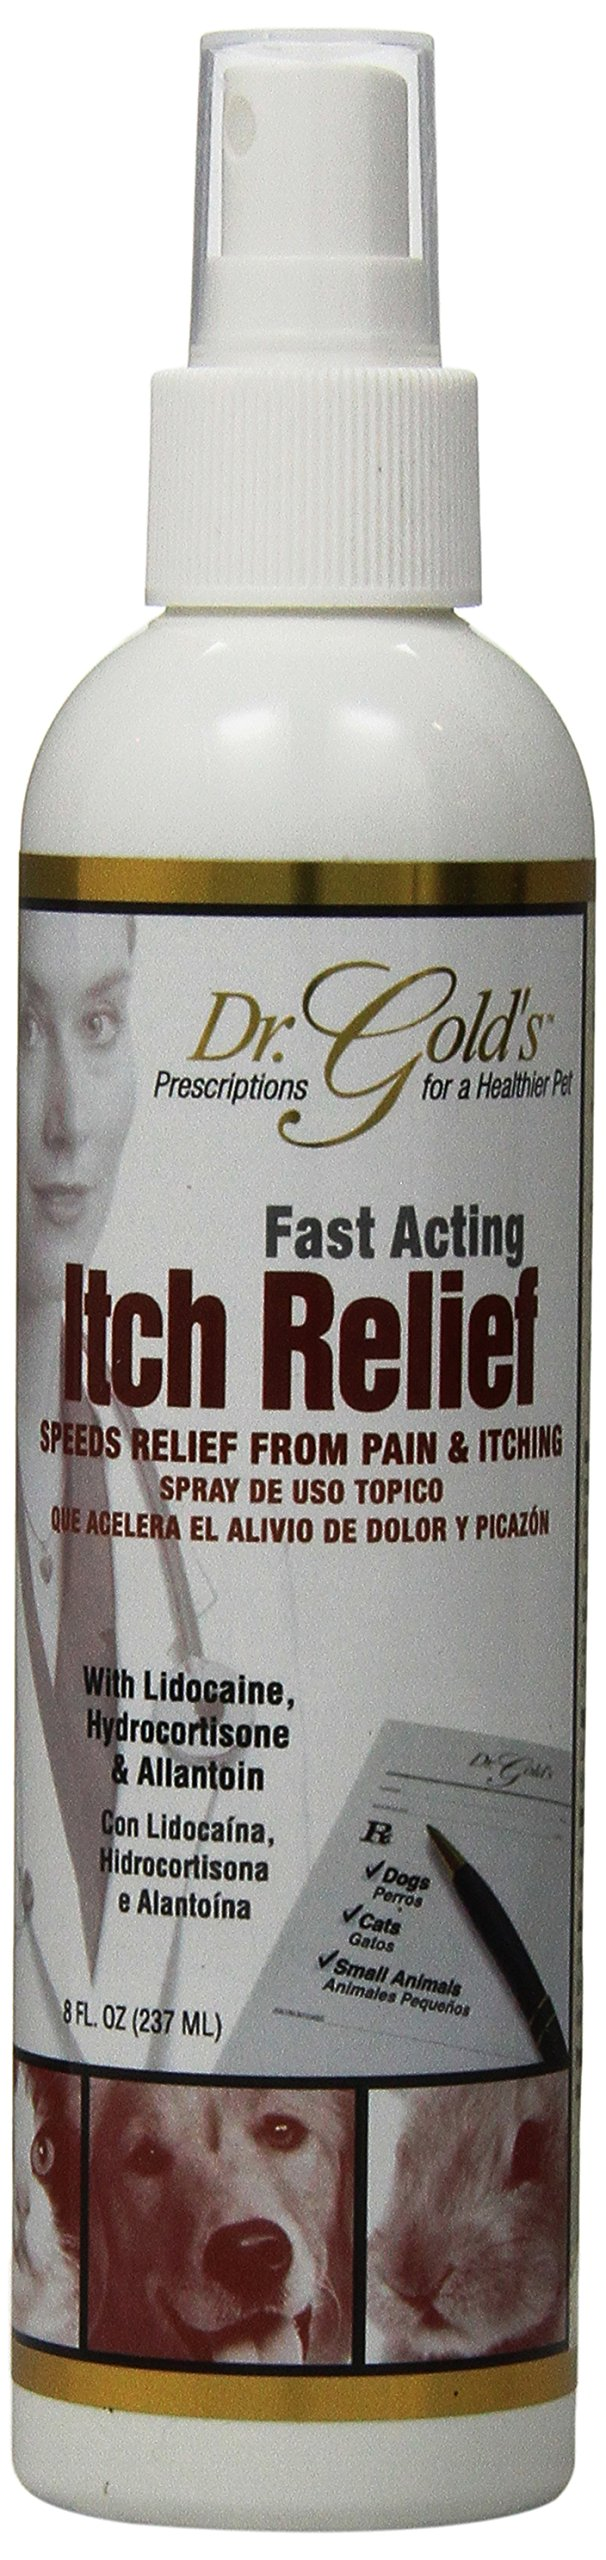 SynergyLabs Dr. Gold's Relief Itch Relief Spray 8 fl. oz